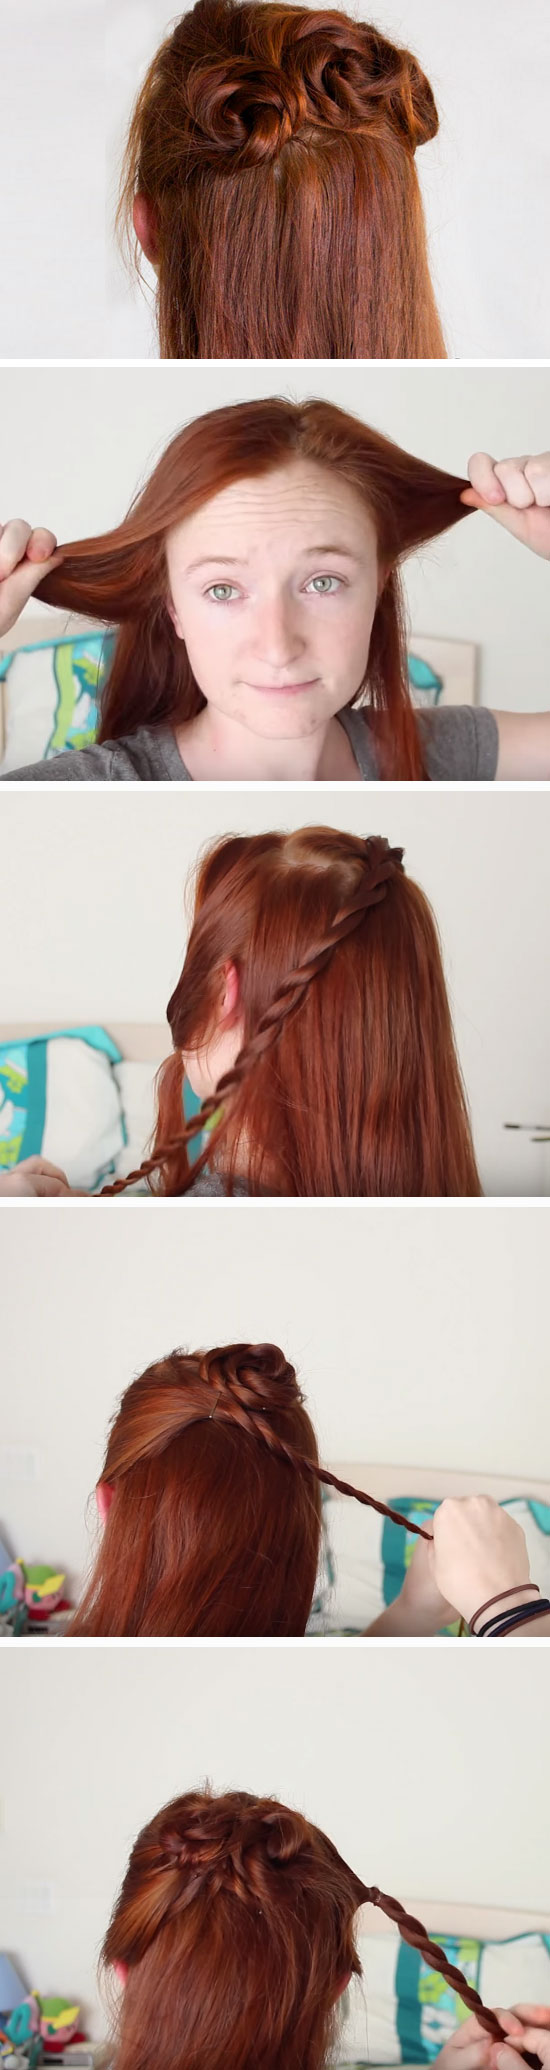 18 diy game of thrones inspired hairstyles | diy games, gaming and